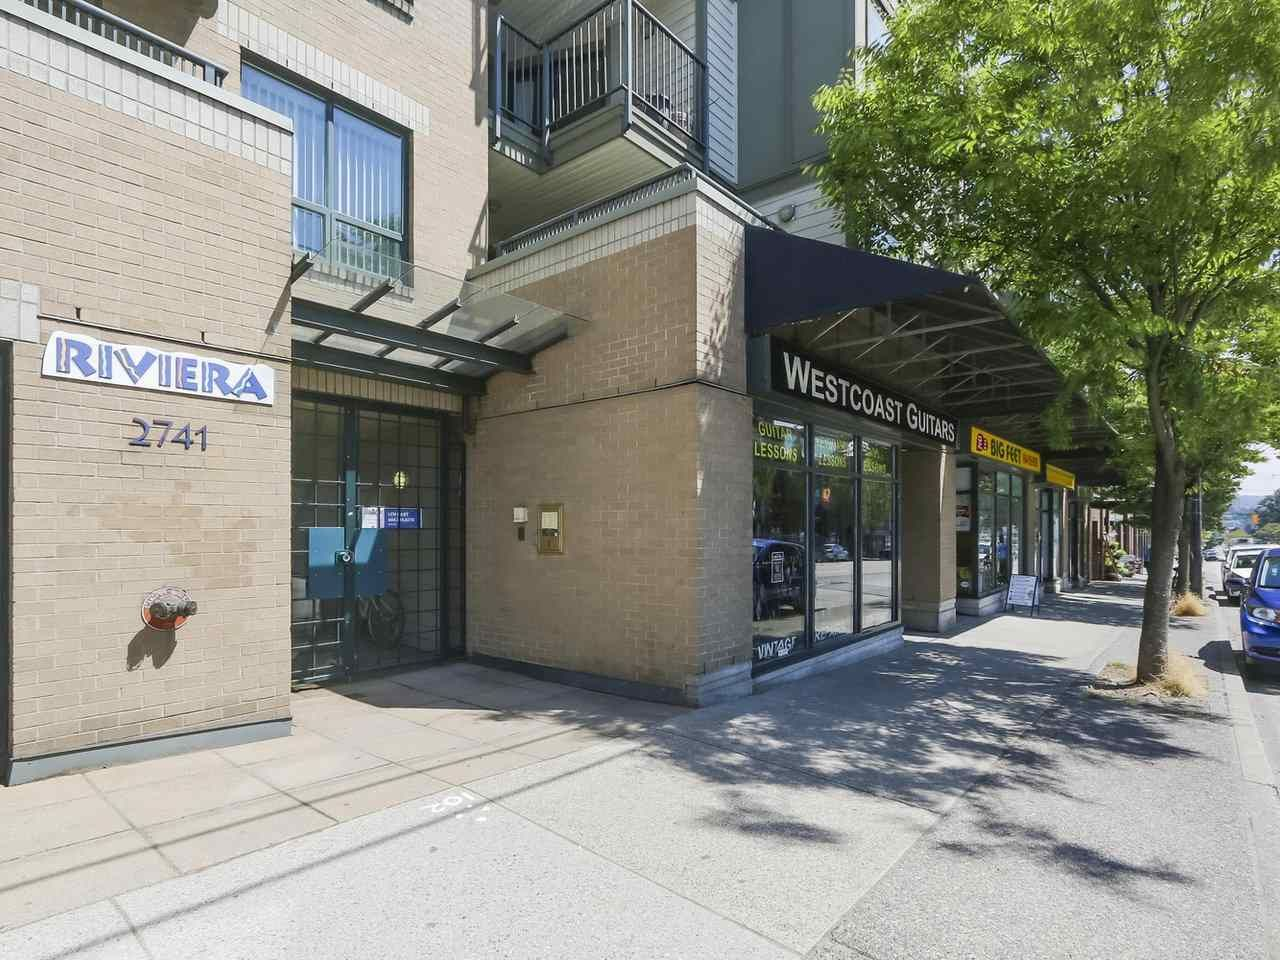 Main Photo: 301 2741 E HASTINGS STREET in Vancouver: Hastings Sunrise Condo for sale (Vancouver East)  : MLS®# R2388912